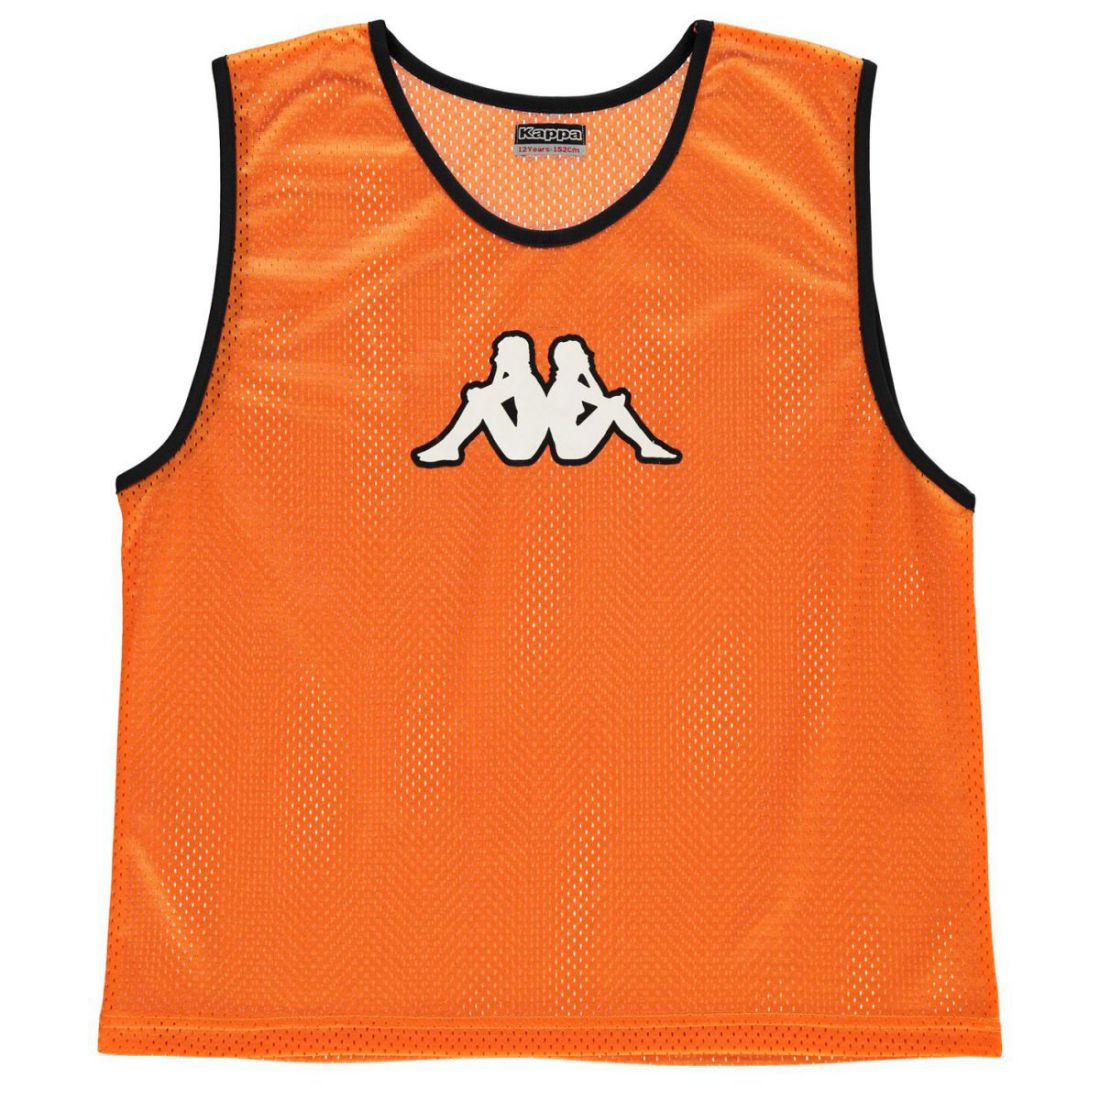 56c0e682e0a Image is loading Kappa-Scrimmage-Vest-Mens-Gents-Tank-Top-Sleeveless-